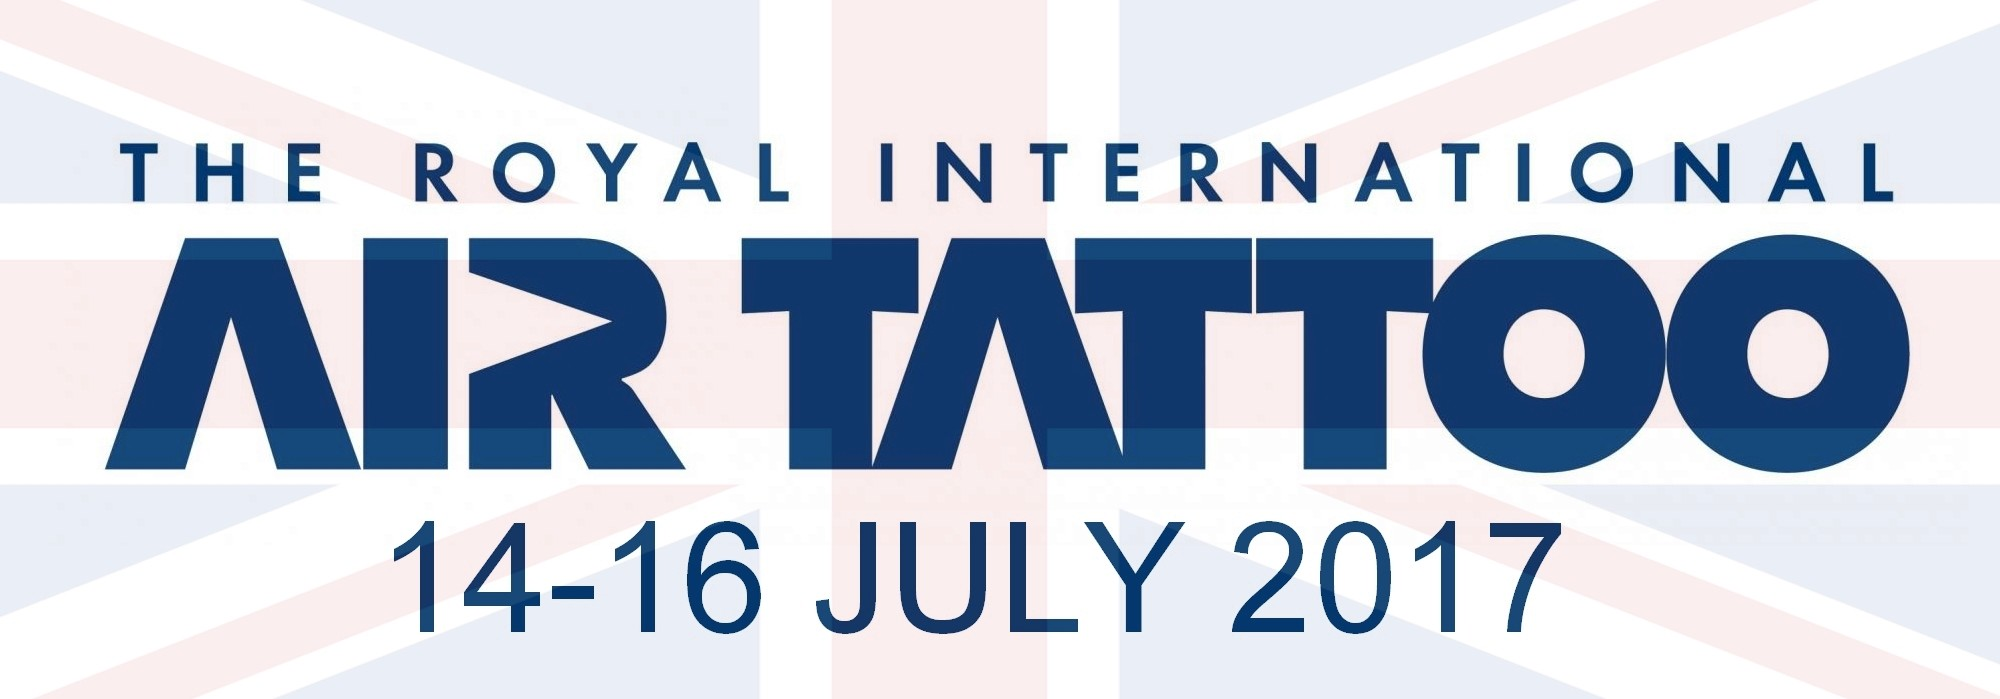 RIAT 2017 , airtattoo , U.S.A.F. Thunderbirds , meeting aerien 2017 , airshow 2017 , July 14-16 , Royal International Air Tattoo 2017 , spotter day 2017 , aircraft , fairford , Royal International Air Tattoo (RIAT) 2017 , Angleterre , UK , Manifestation Aeriennes 2017